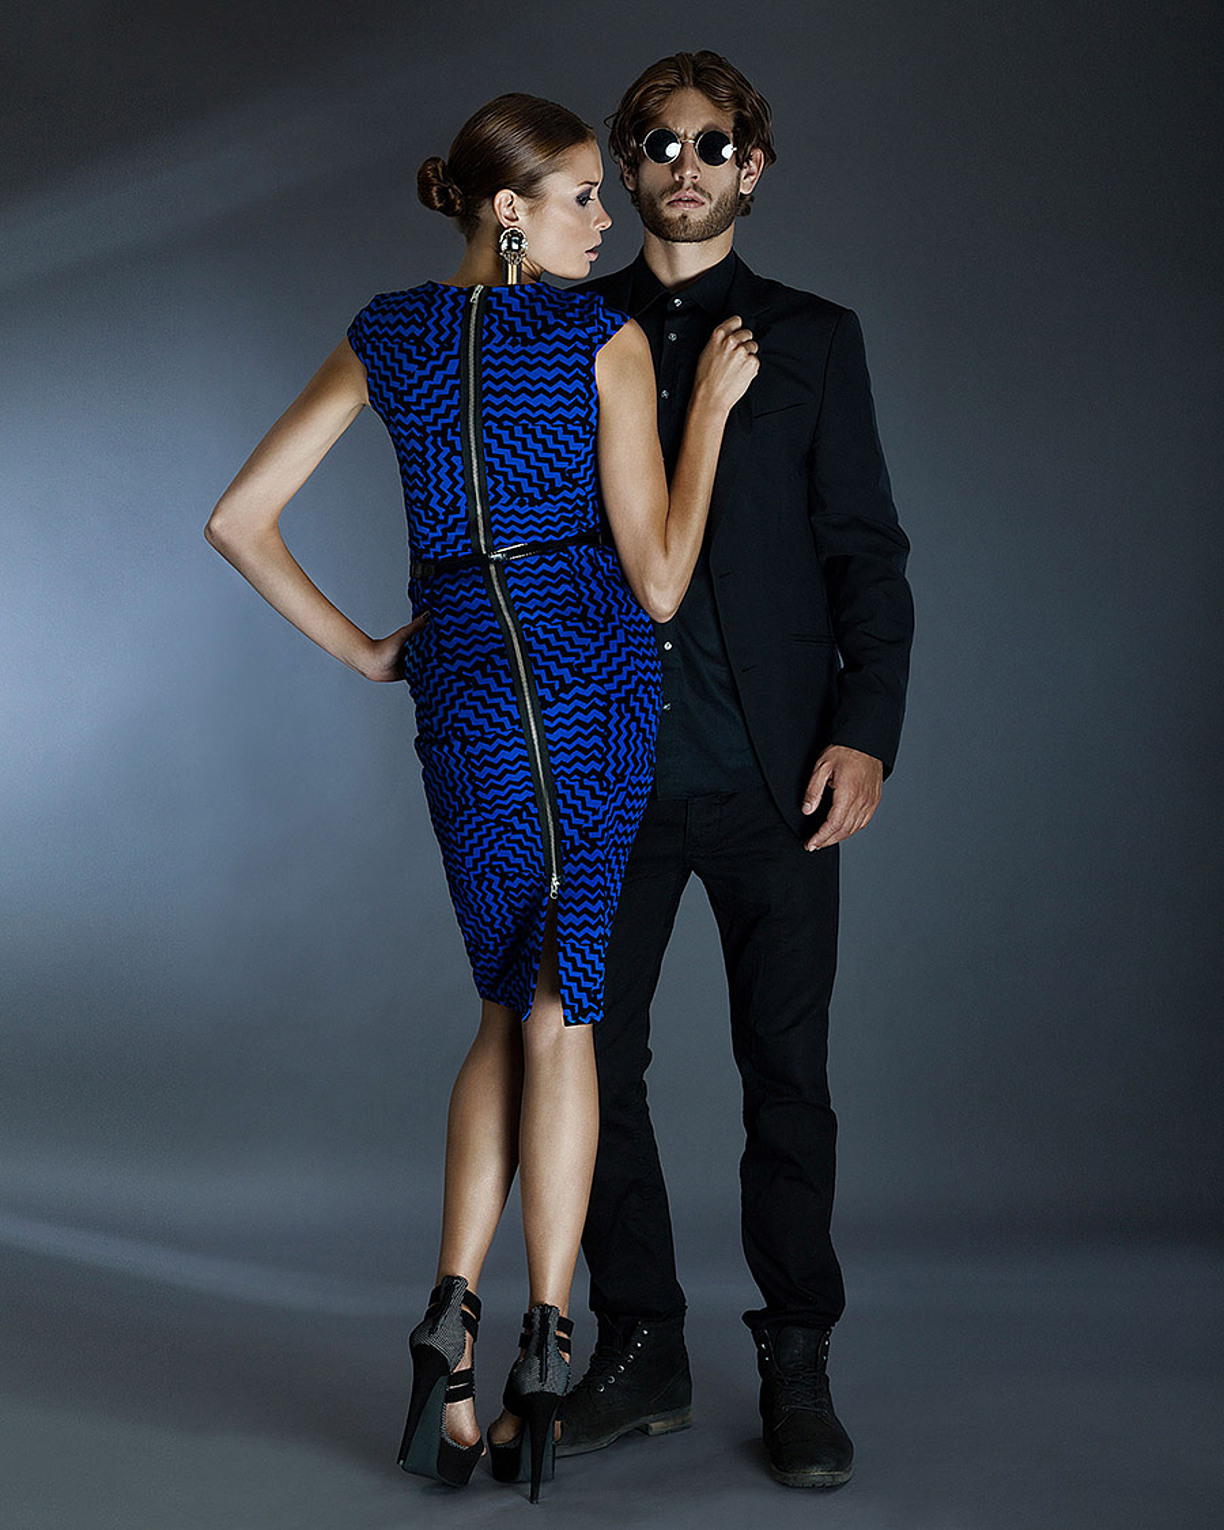 A couple stand in front of each other. The man with black sunglasses in a black outfit and the women in a blue tight dress with a long zip and black high heels